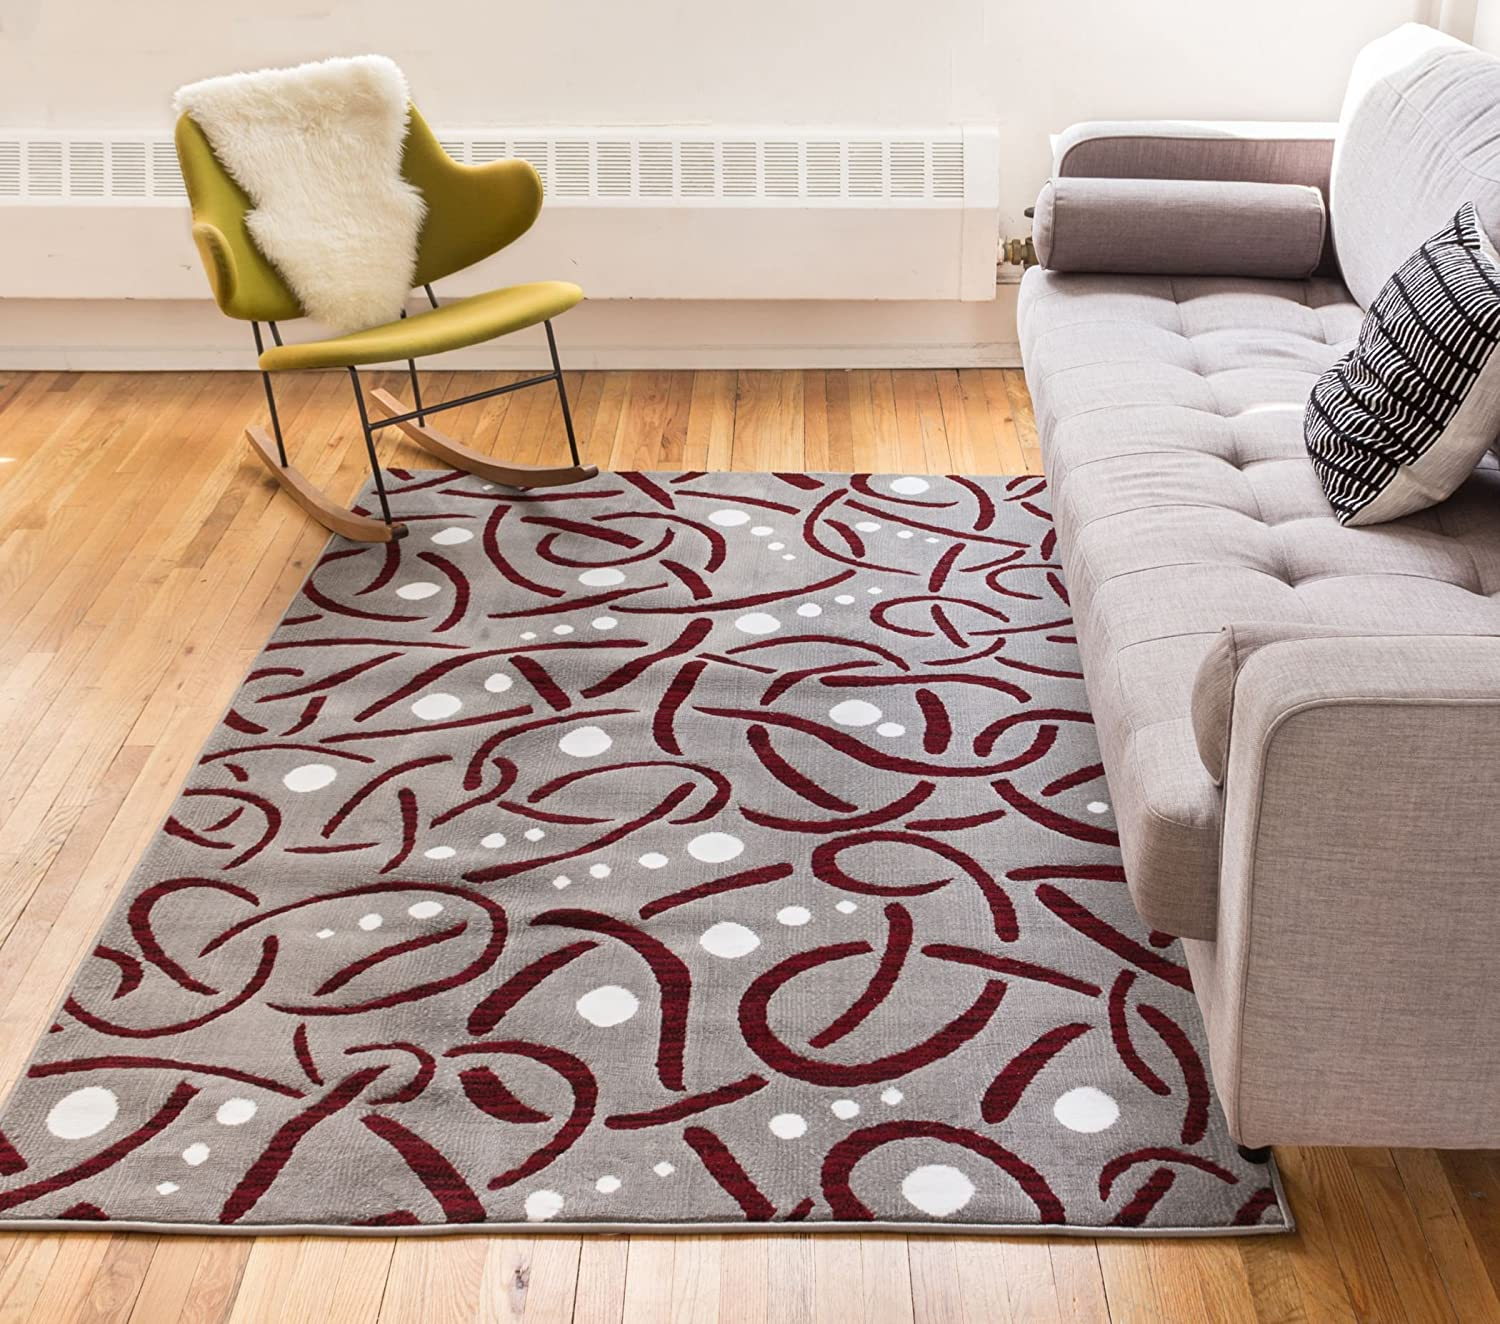 Geometric Modern Casual Abstract Swirls Dots Lines Area Rug Thick Soft